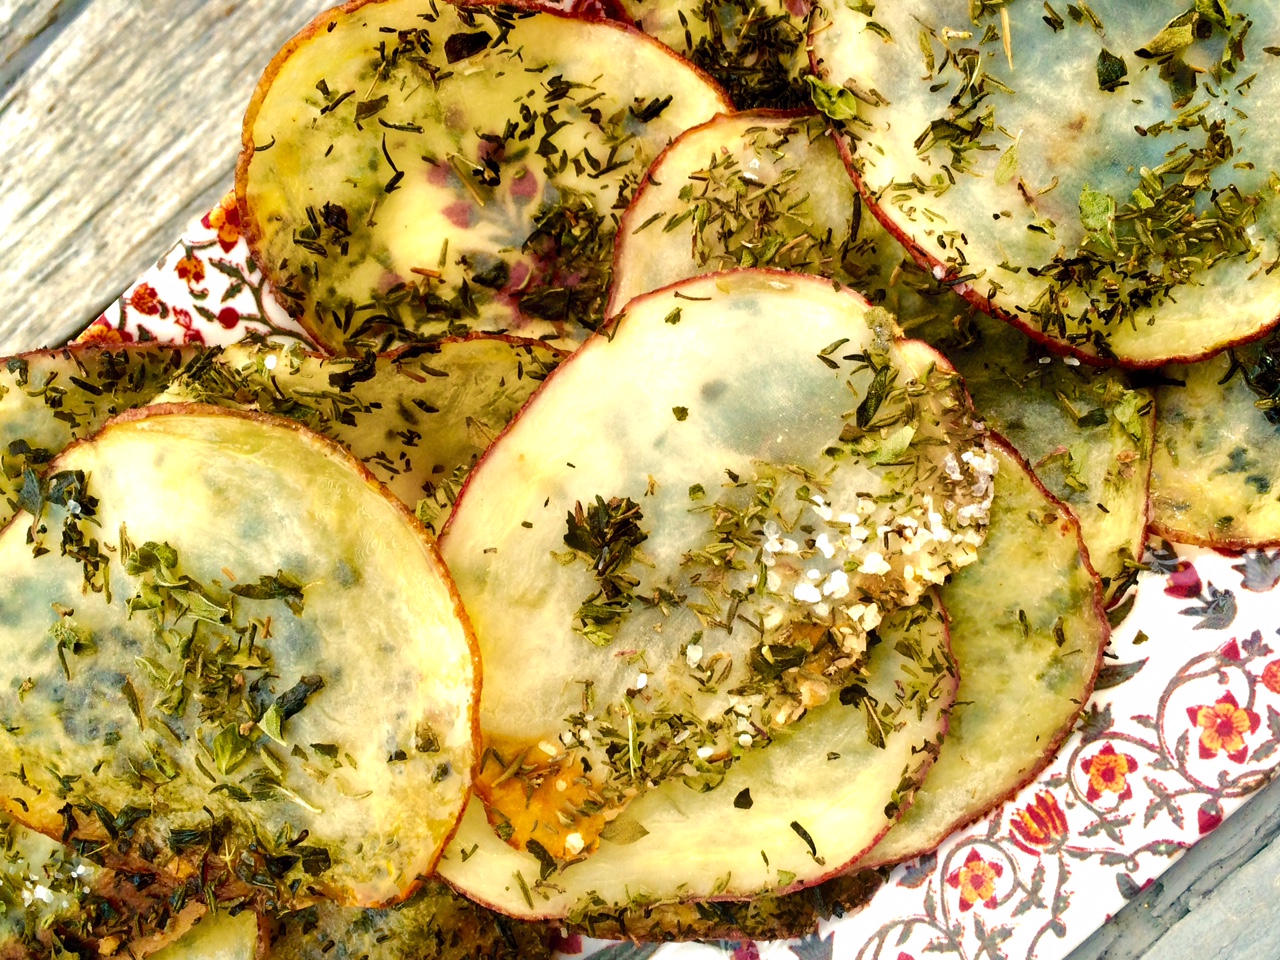 Healthy Snacks: Thyme Oregano Homemade Potato Chips